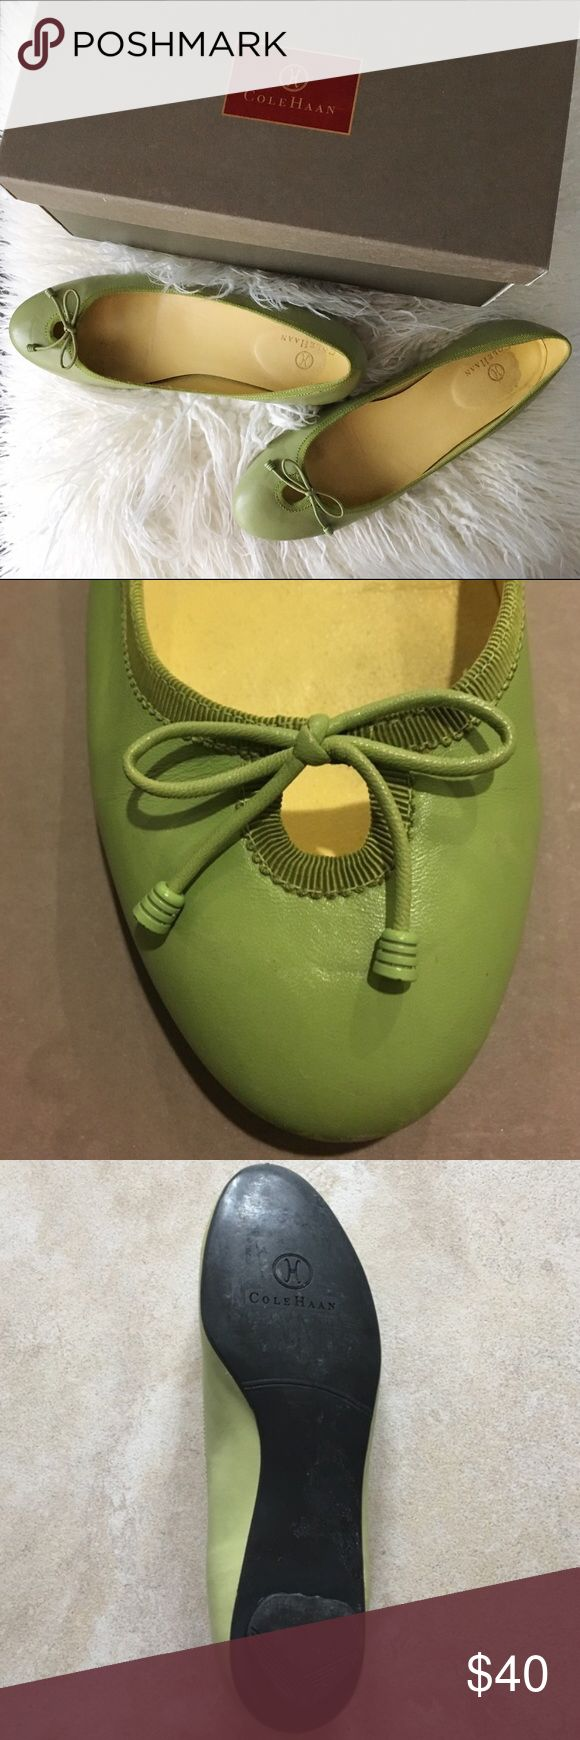 """🆕Cole Haan Green Flats Ballet Flats. Cole Haan """"Dorean Skimmer"""" Genuine Leather Decorative bow and decorative cutout detail Rounded toe design Elegant fabric trim Stacked 3/8"""" heel Cushioned insole leather. Plastic-ish heel. Smoke & pet free home. Cole Haan Shoes Flats & Loafers"""